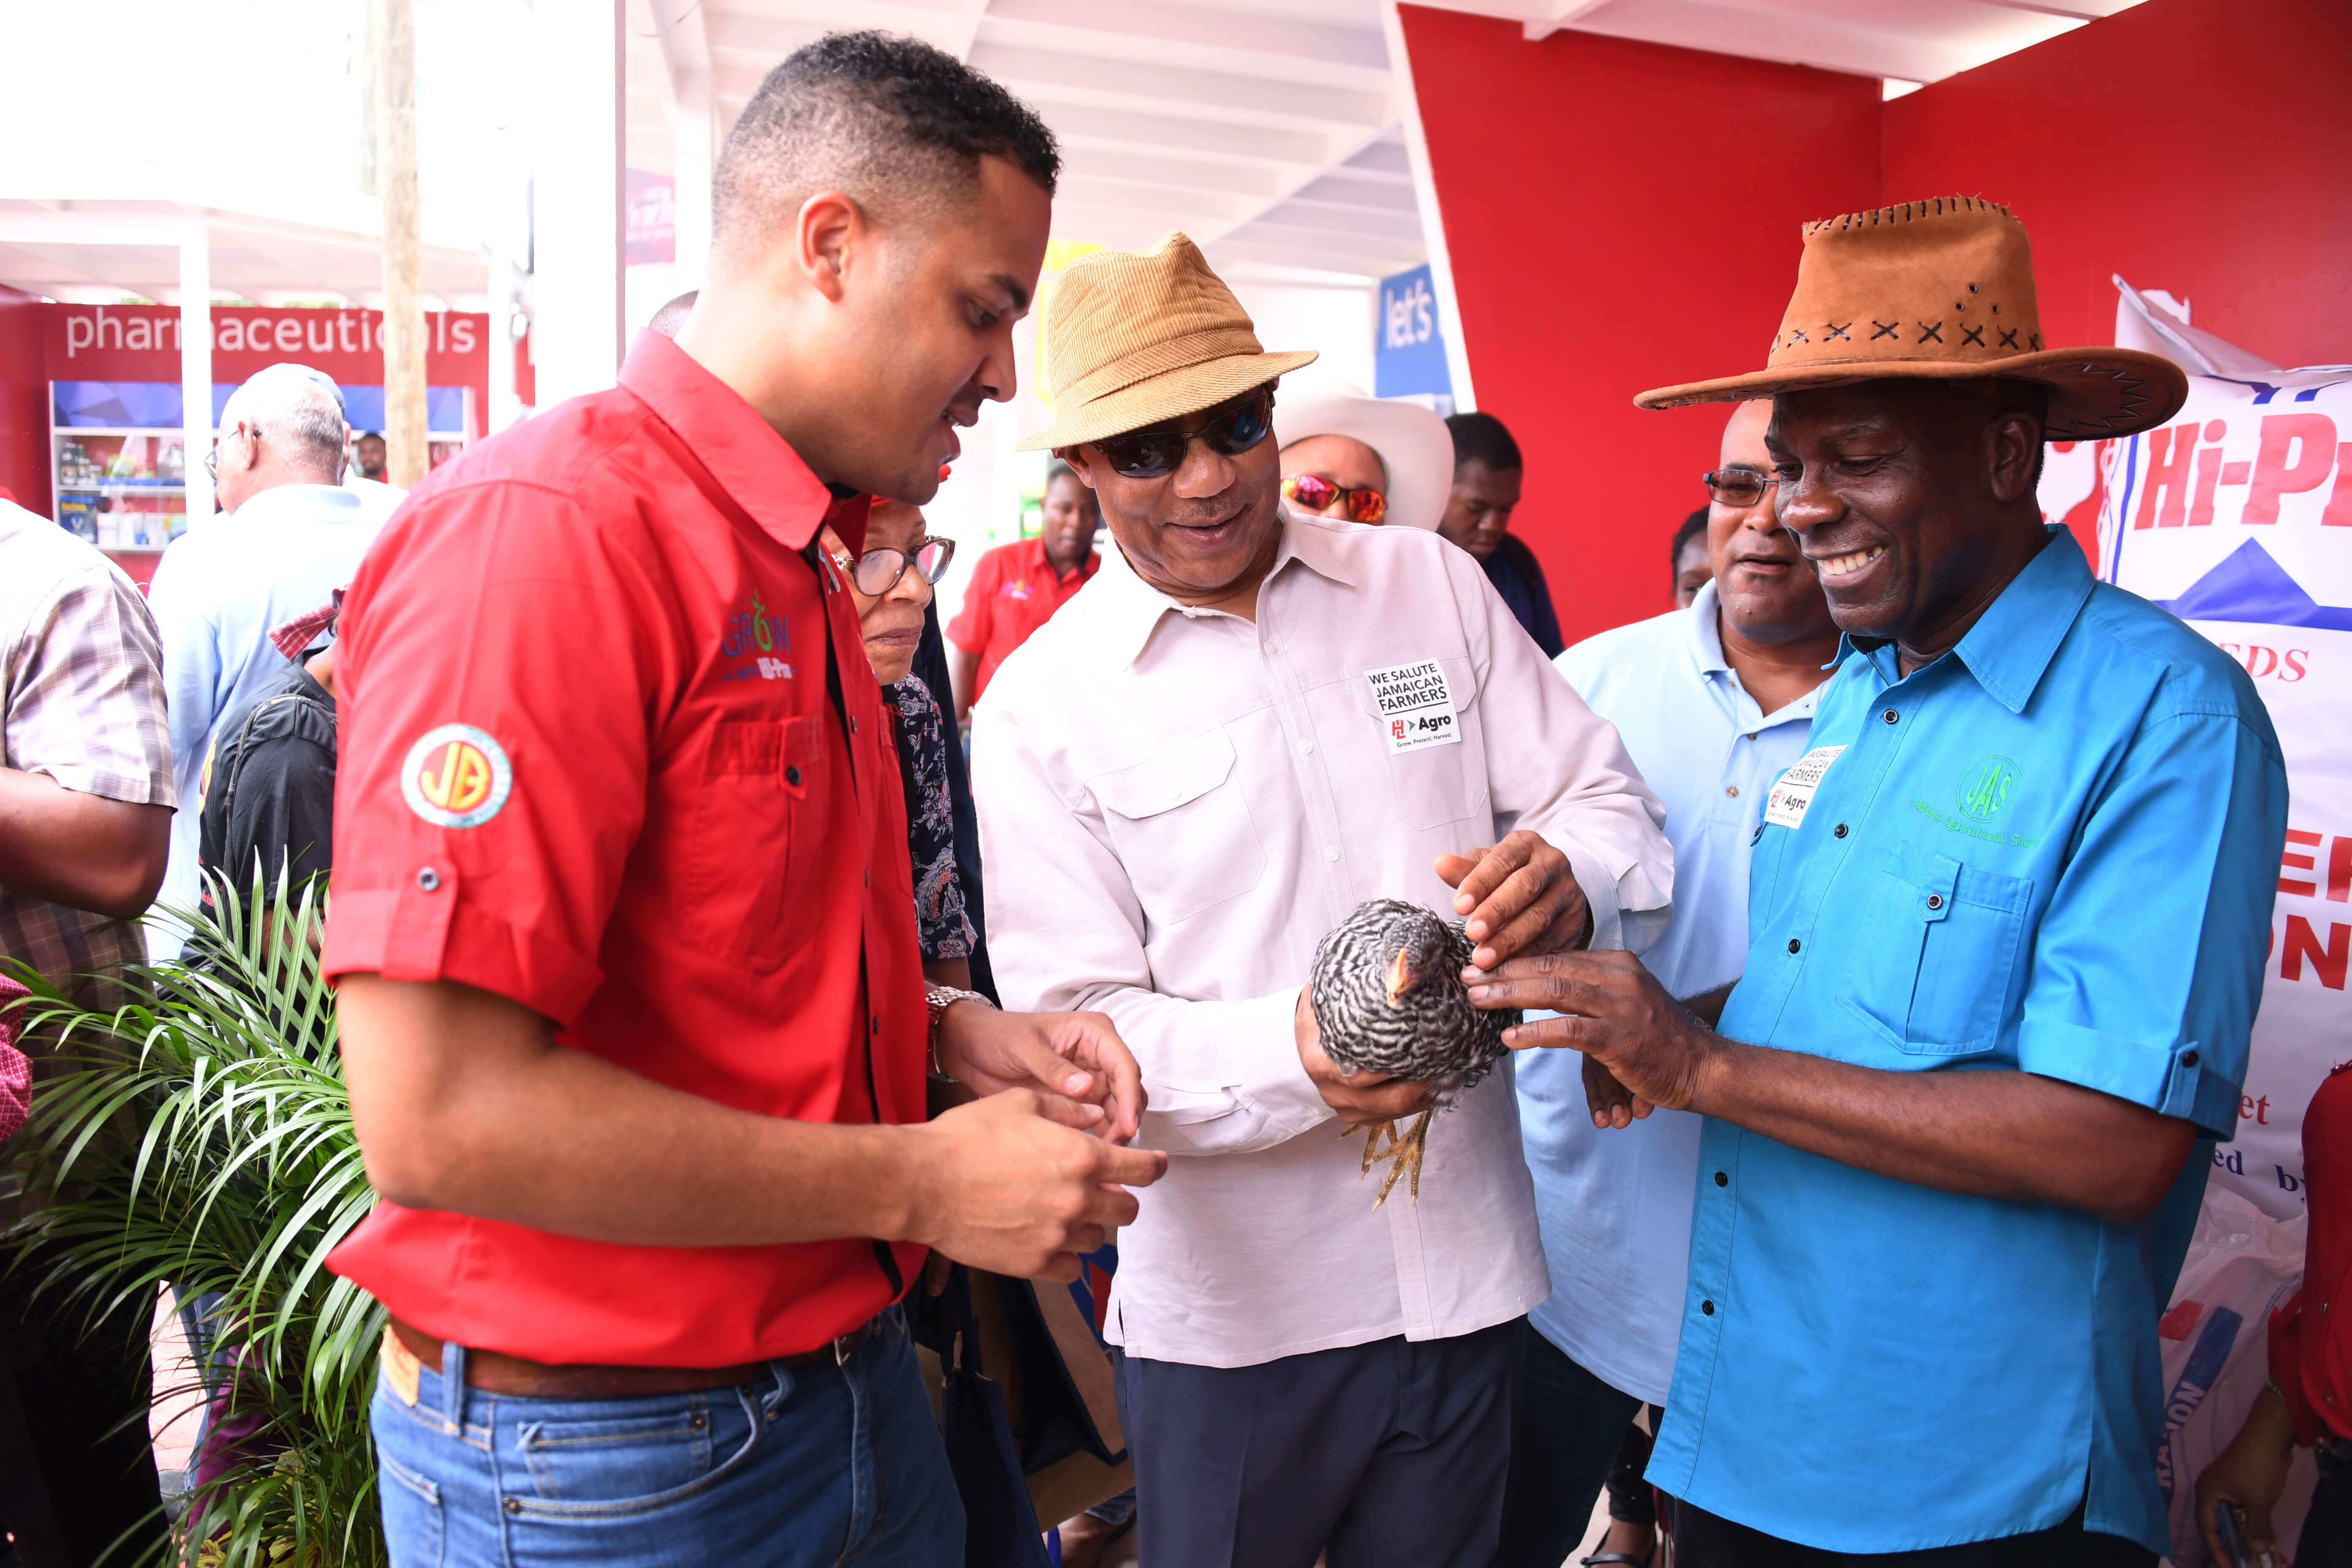 His Excellency Sir Patrick Allen (centre) holds a chicken during his tour of the Hi Pro booth at the Denbigh Agricultural, Industrial and Food Show in Clarendon on Sunday (August 6, 2017). Looking on are President of Jamaica Agricultural Society, Mr. Norman Grant (right) and a Hi Pro Feed Representative.